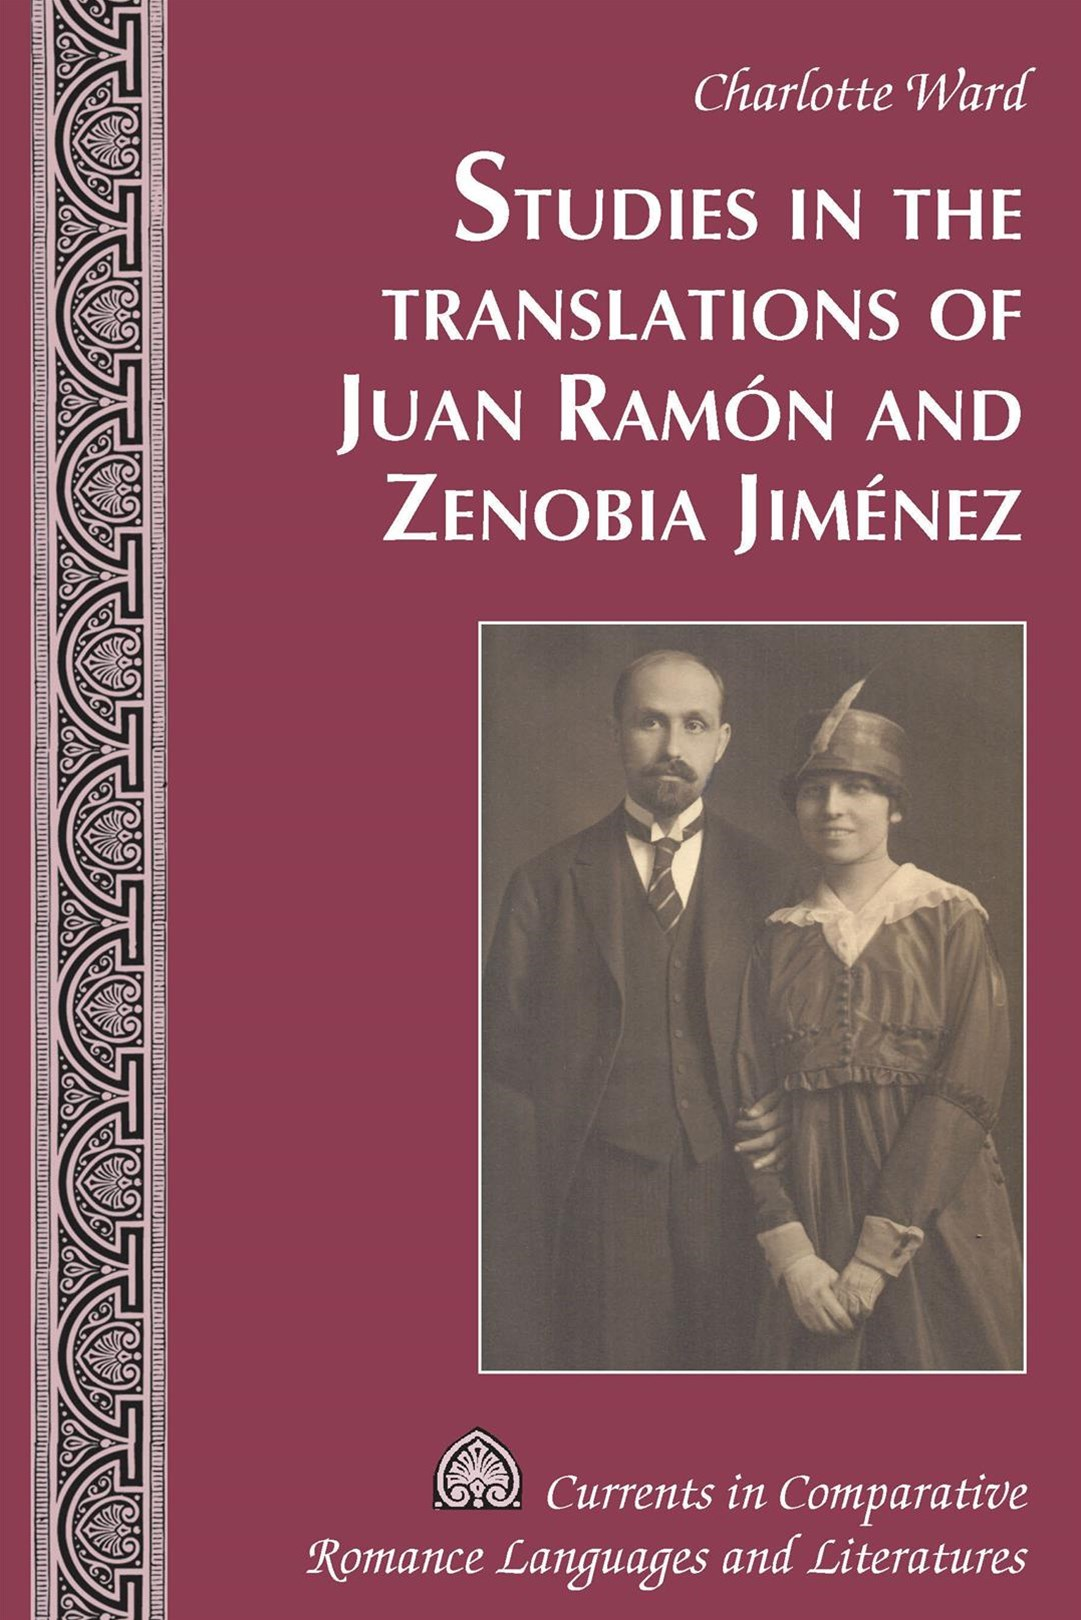 Studies in the Translations of Juan Ram+¦n and Zenobia Jim+¬nez